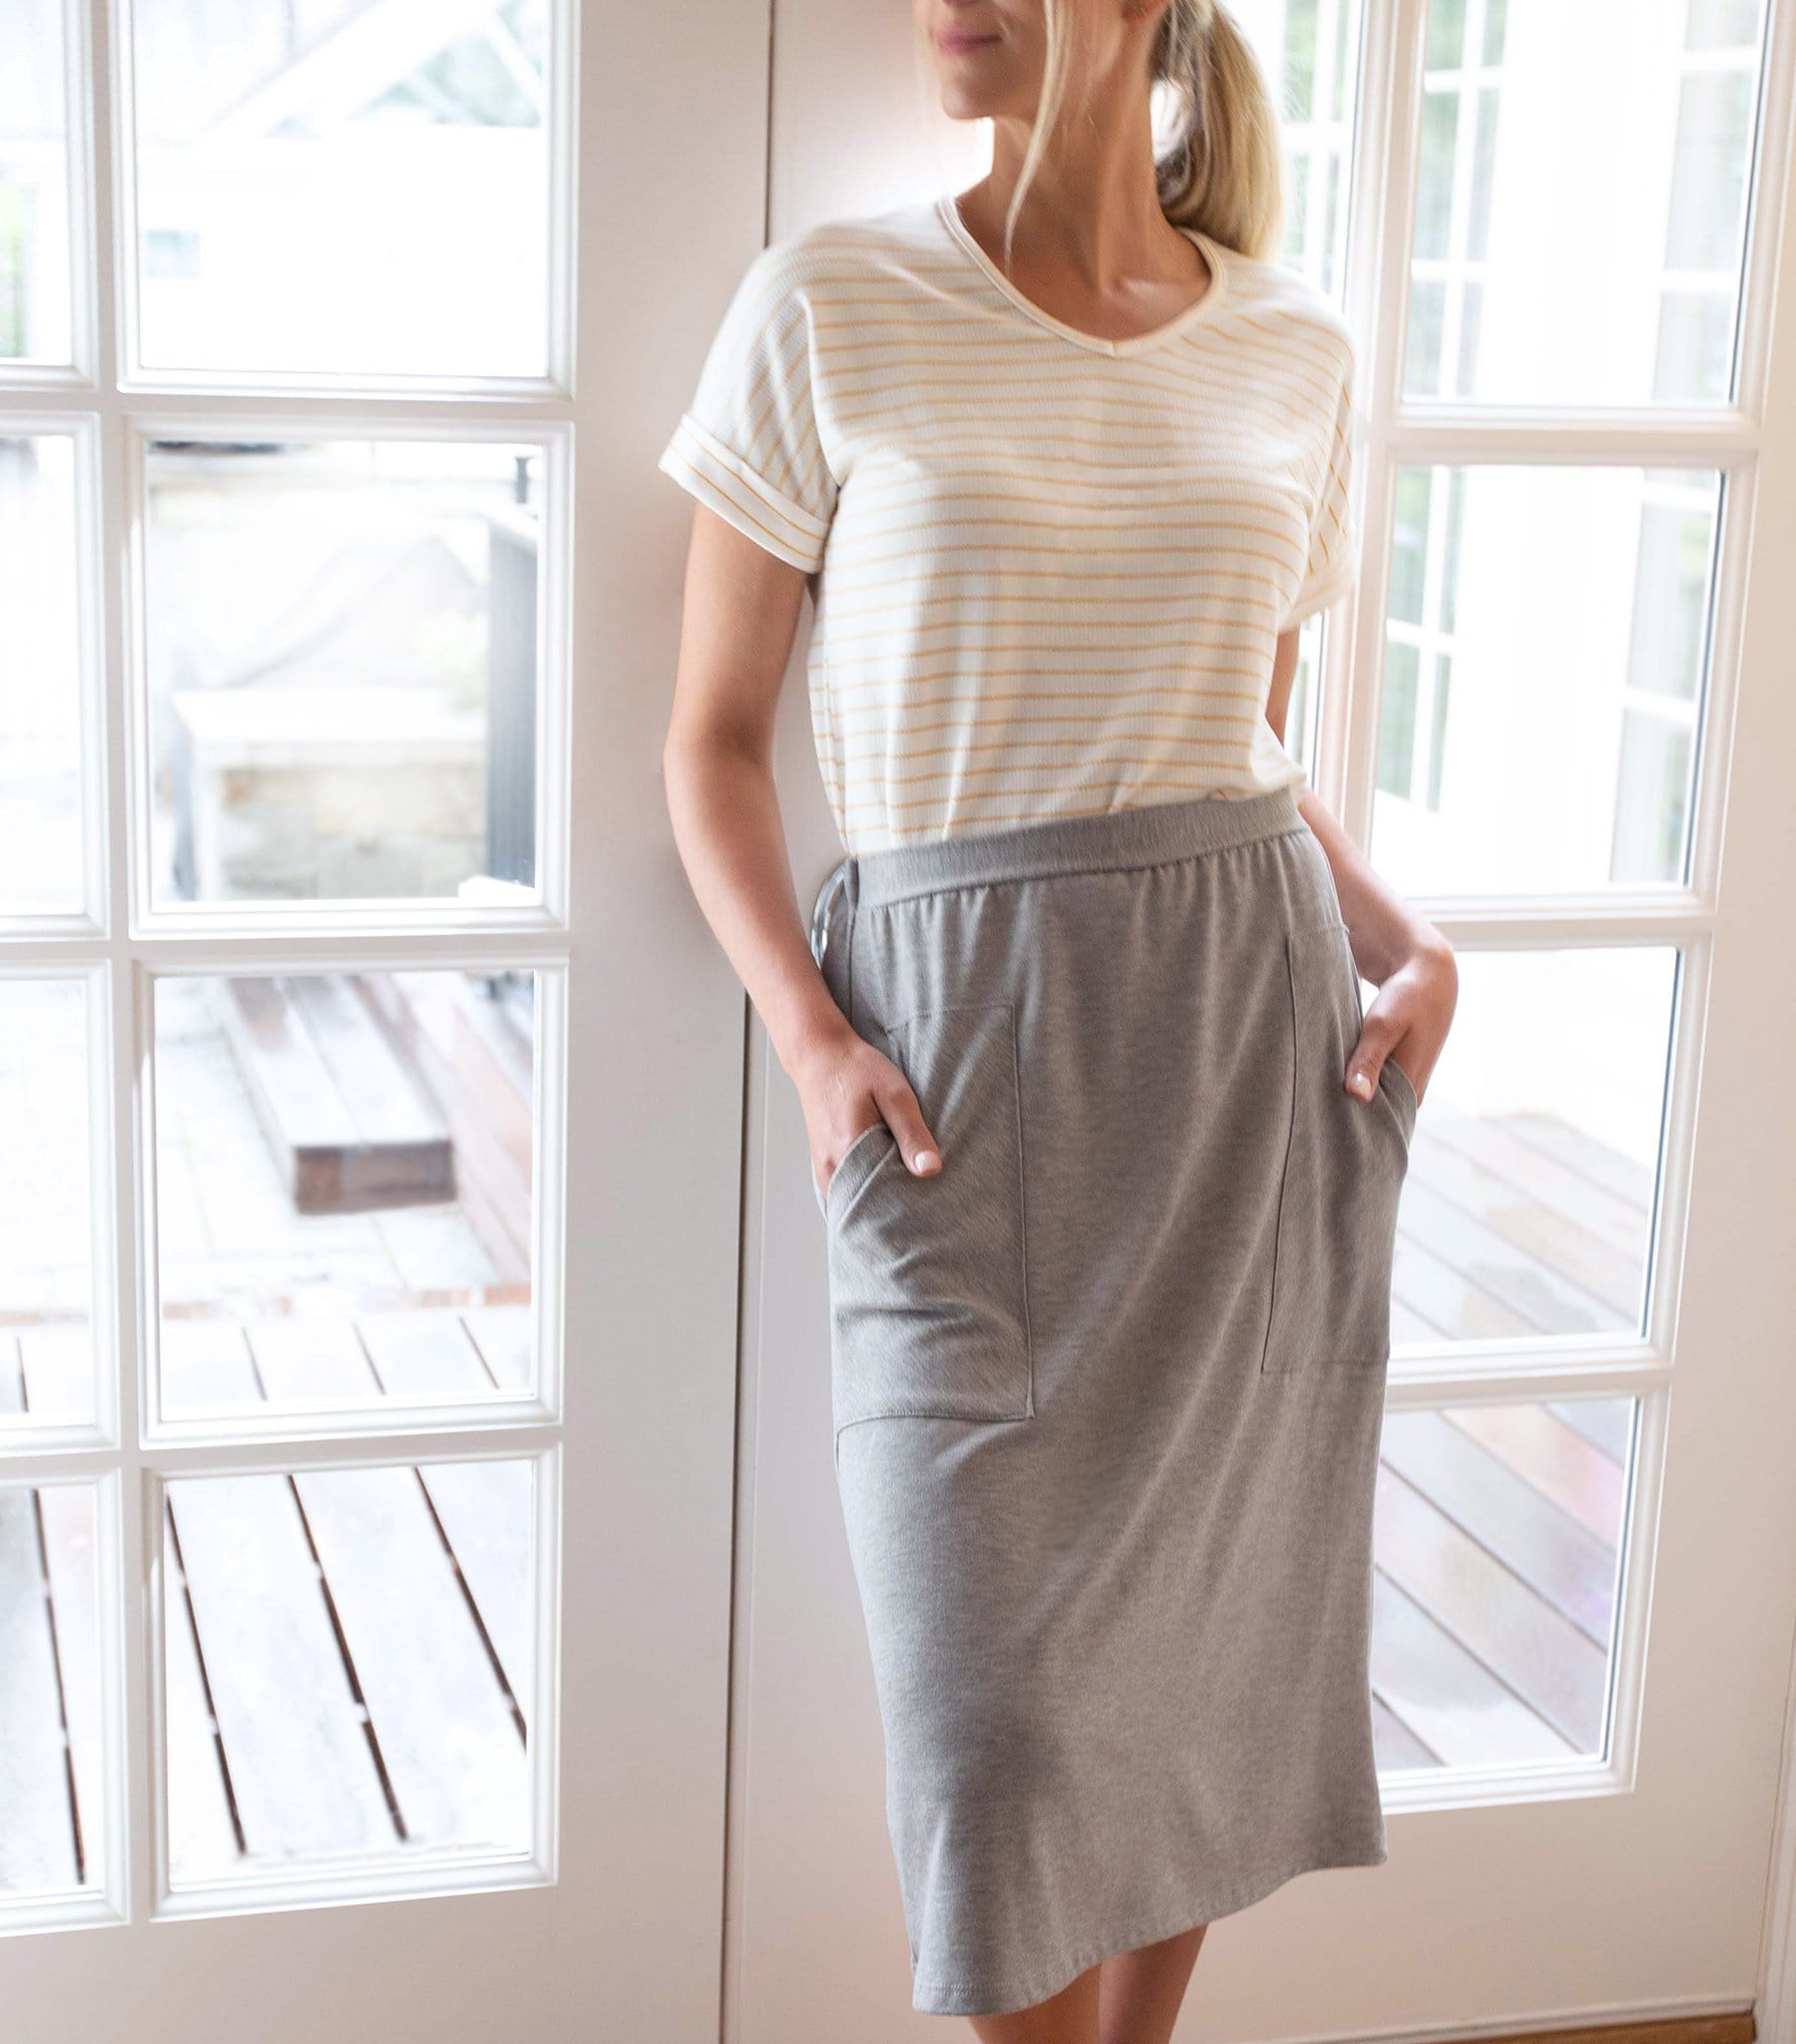 Patch Pocket Knit Skirt